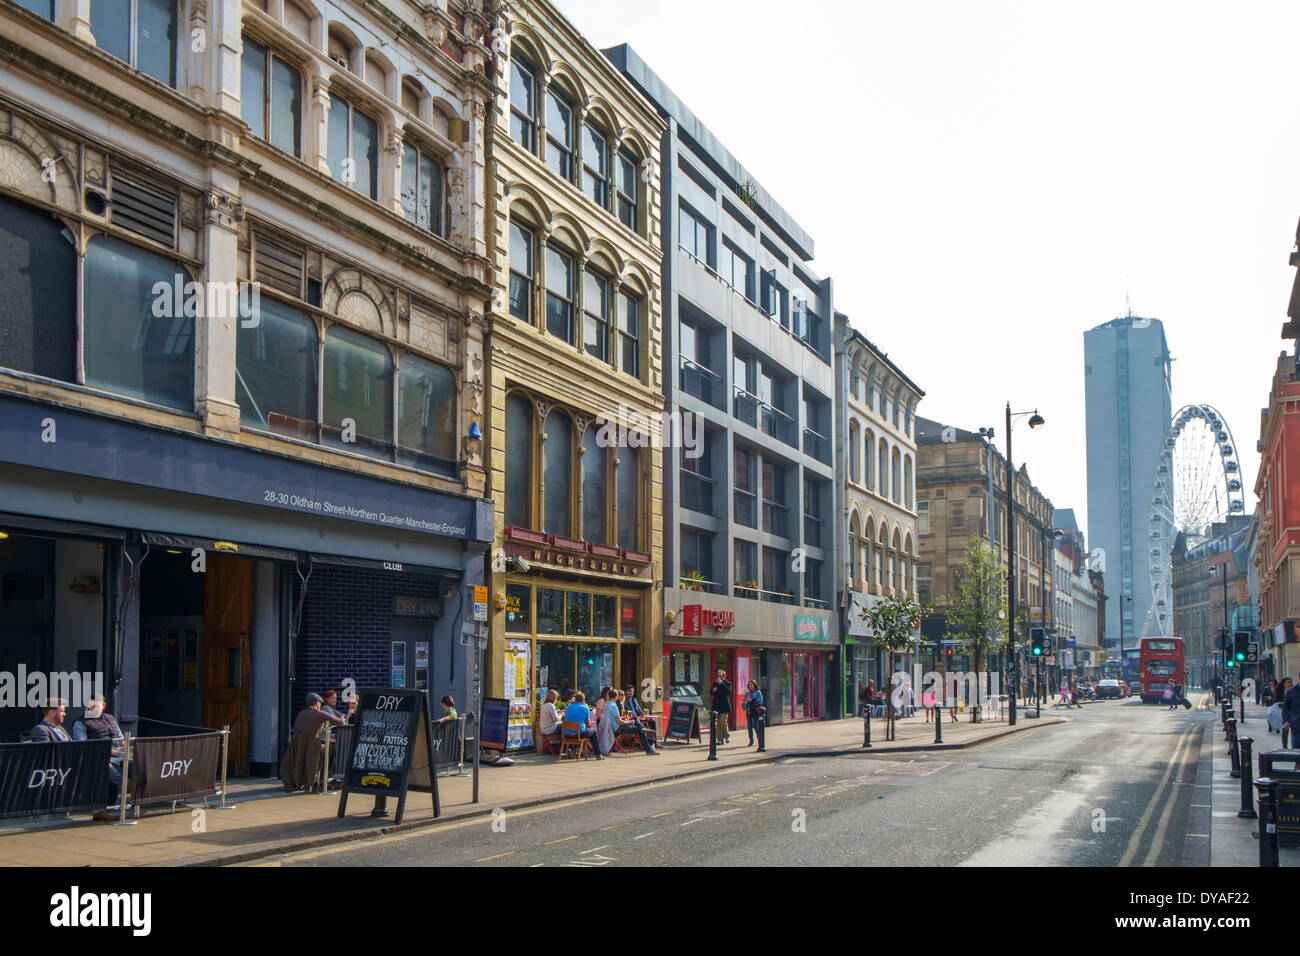 Oldham Street in the Northern Quarter, looking towards Piccadilly Gardens and the Manchester Wheel, Manchester, England, UK - Stock Image